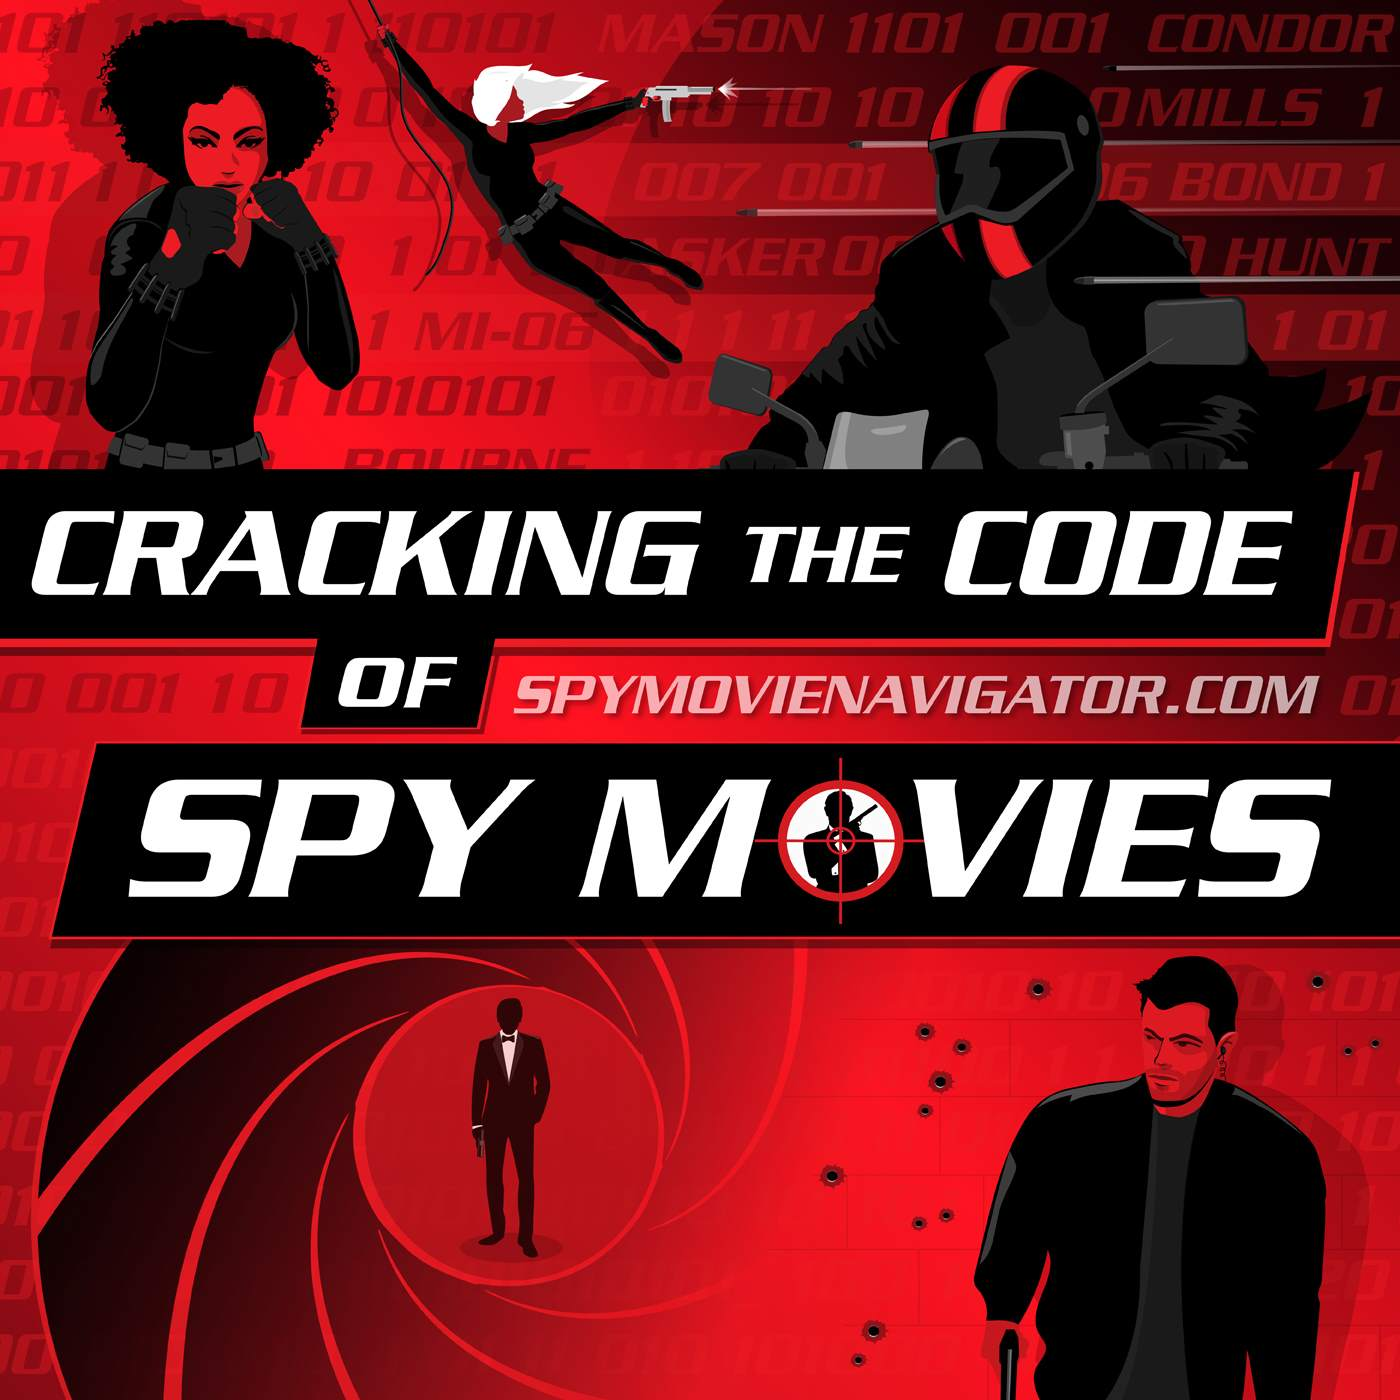 Cracking the Code of Spy Movies!